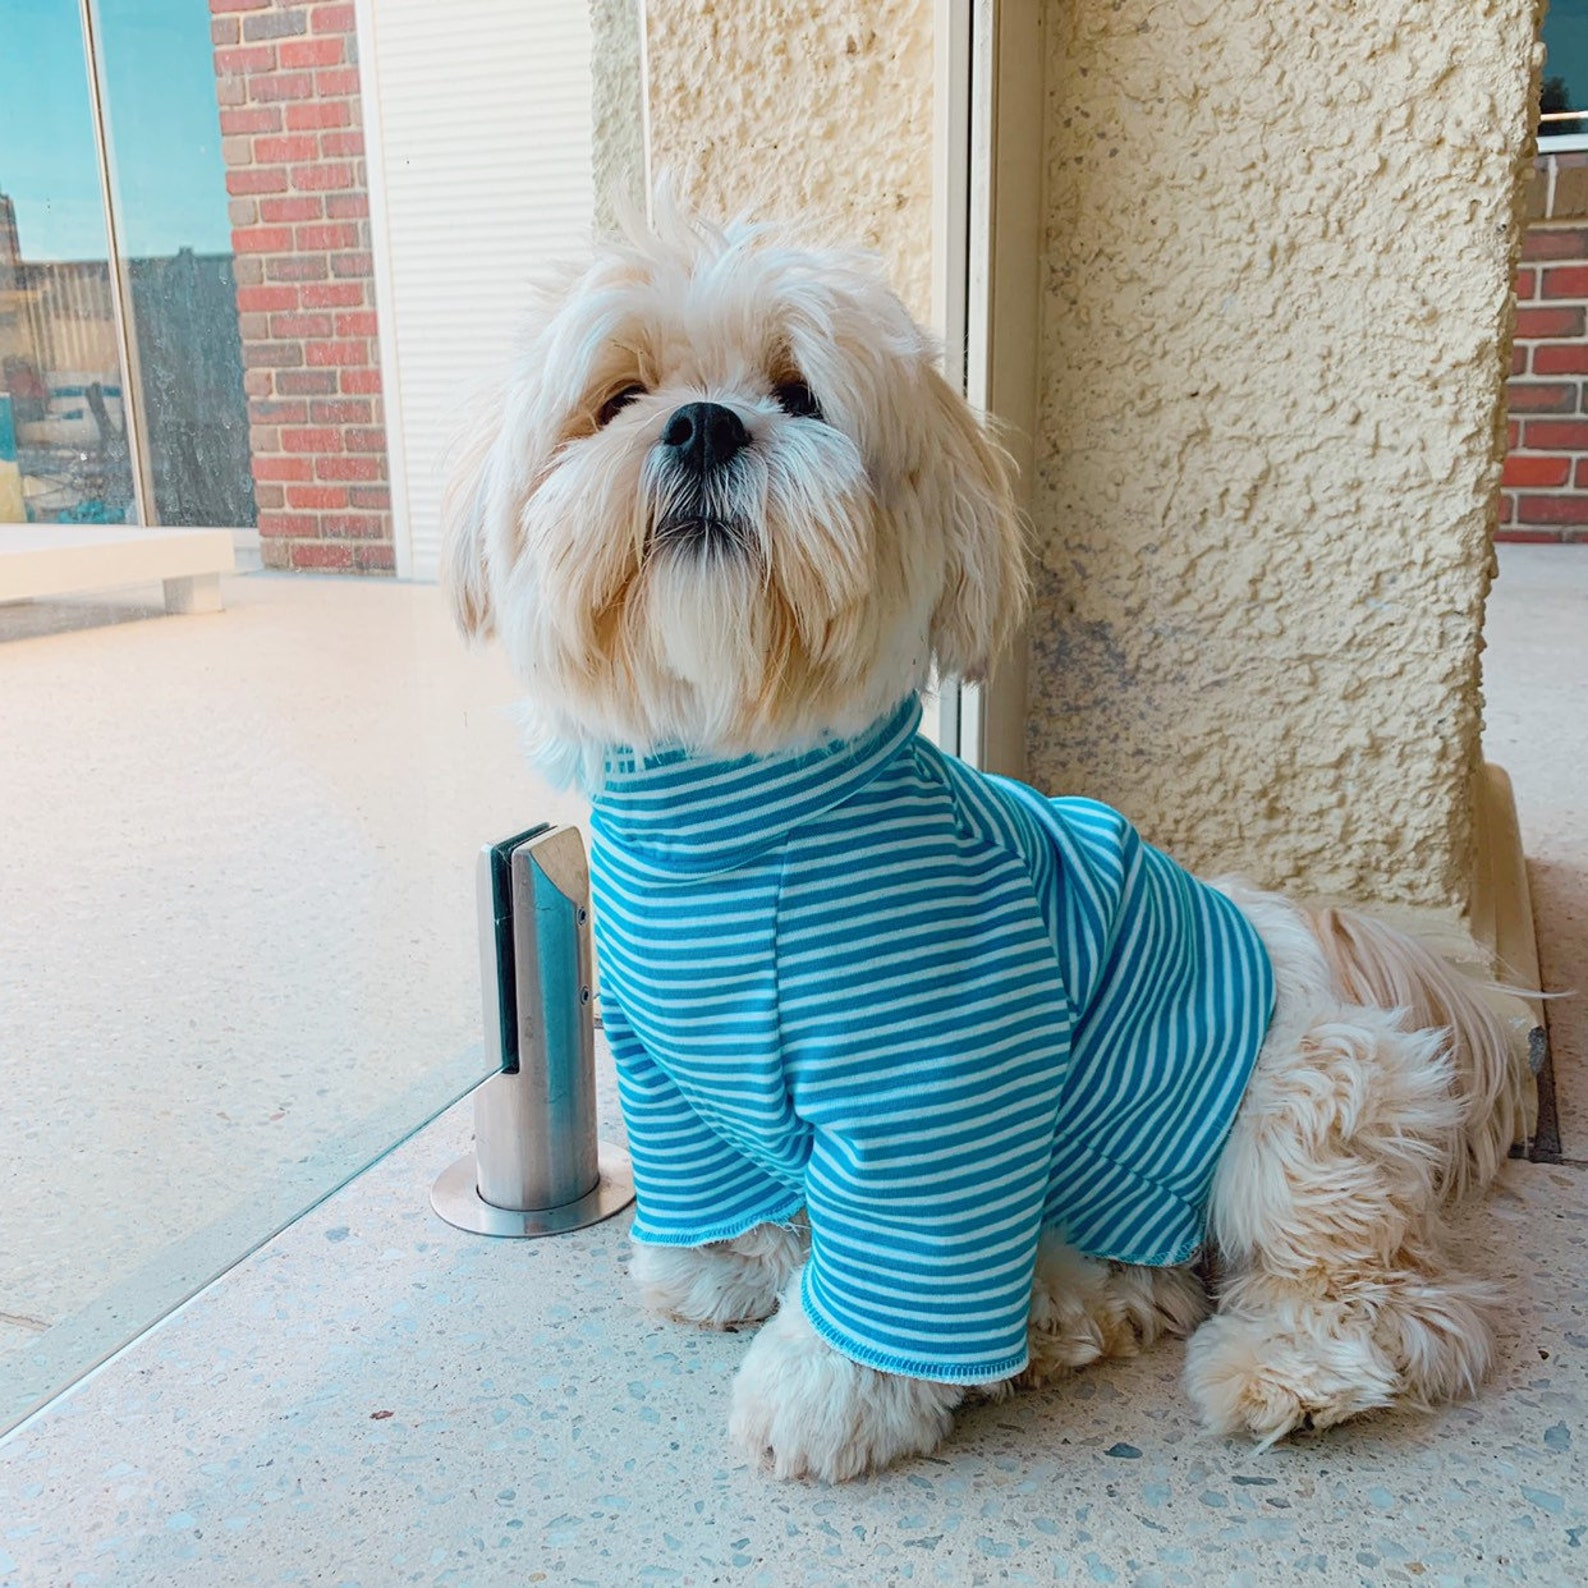 White dog posing in blue dog hoodie